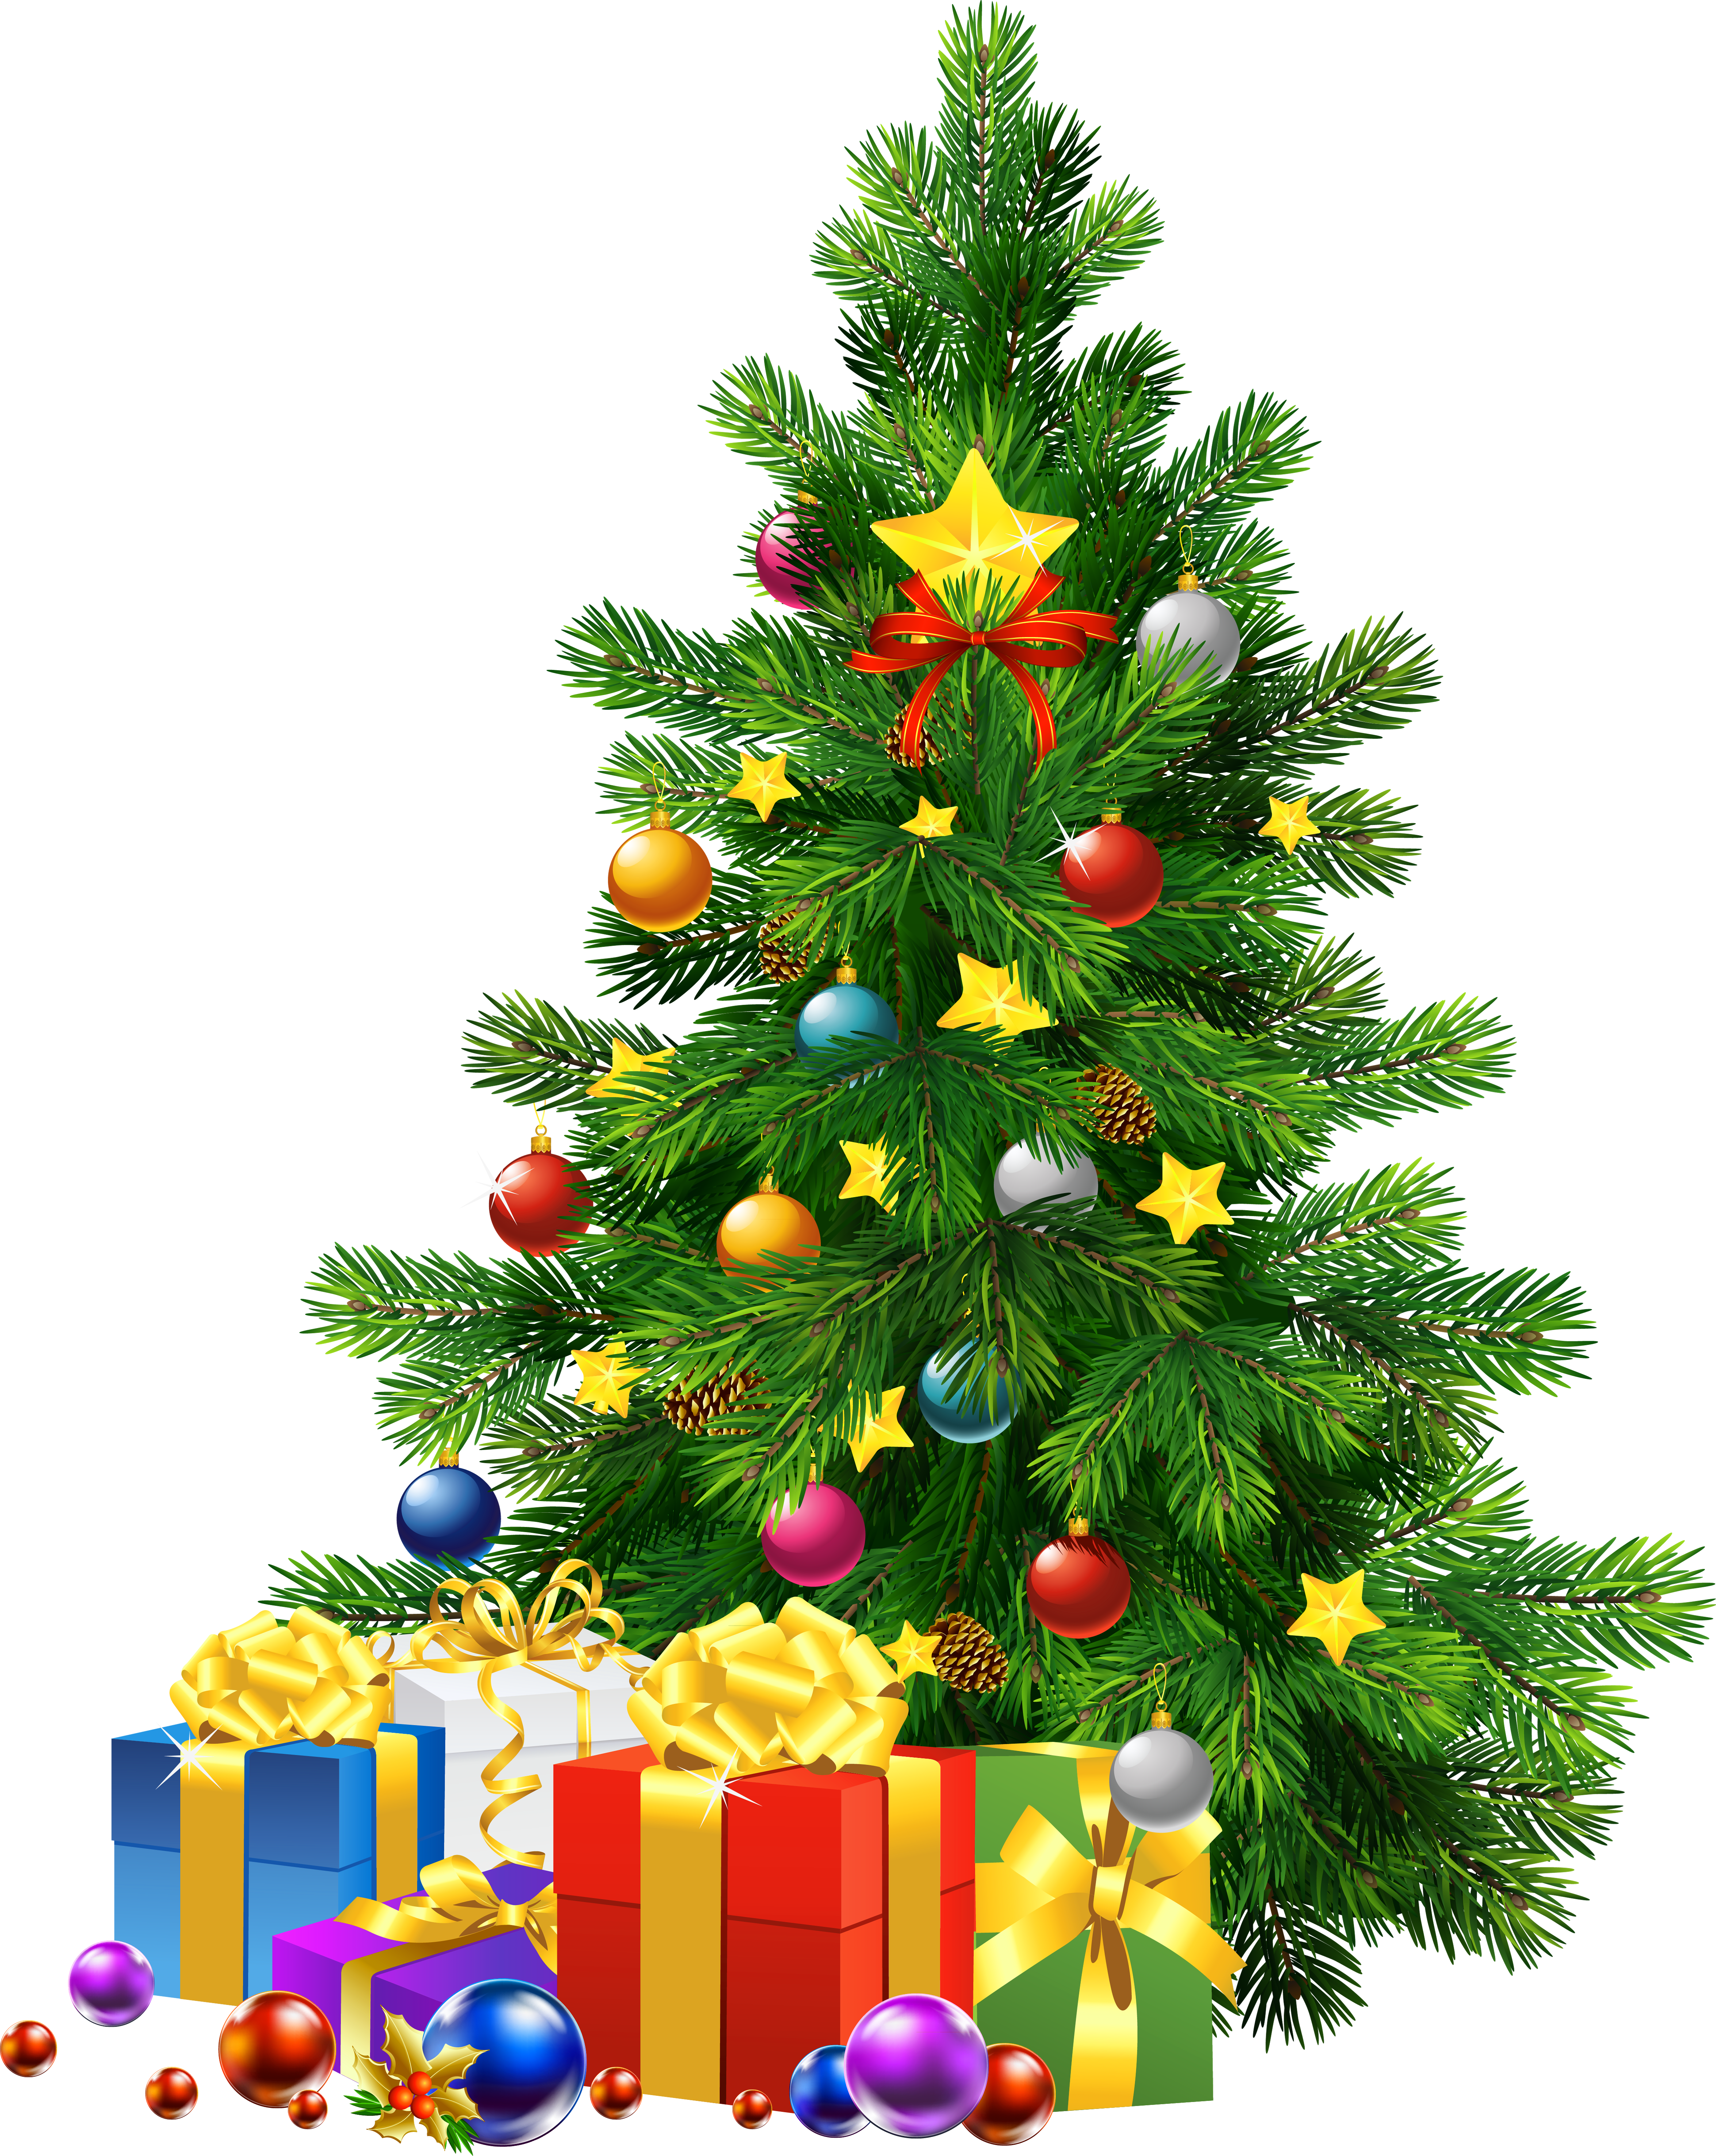 Large Transparent PNG Christmas Tree with Gifts.